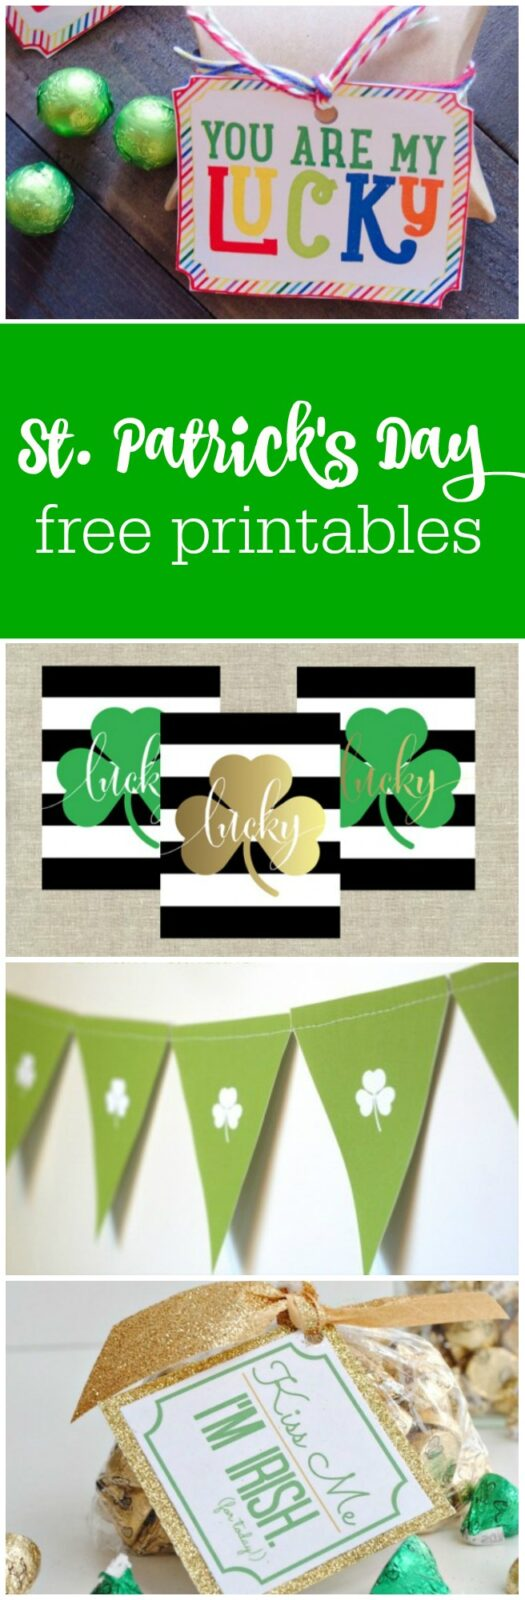 12 St. Patrick's Day free printables curated by The Party Teacher